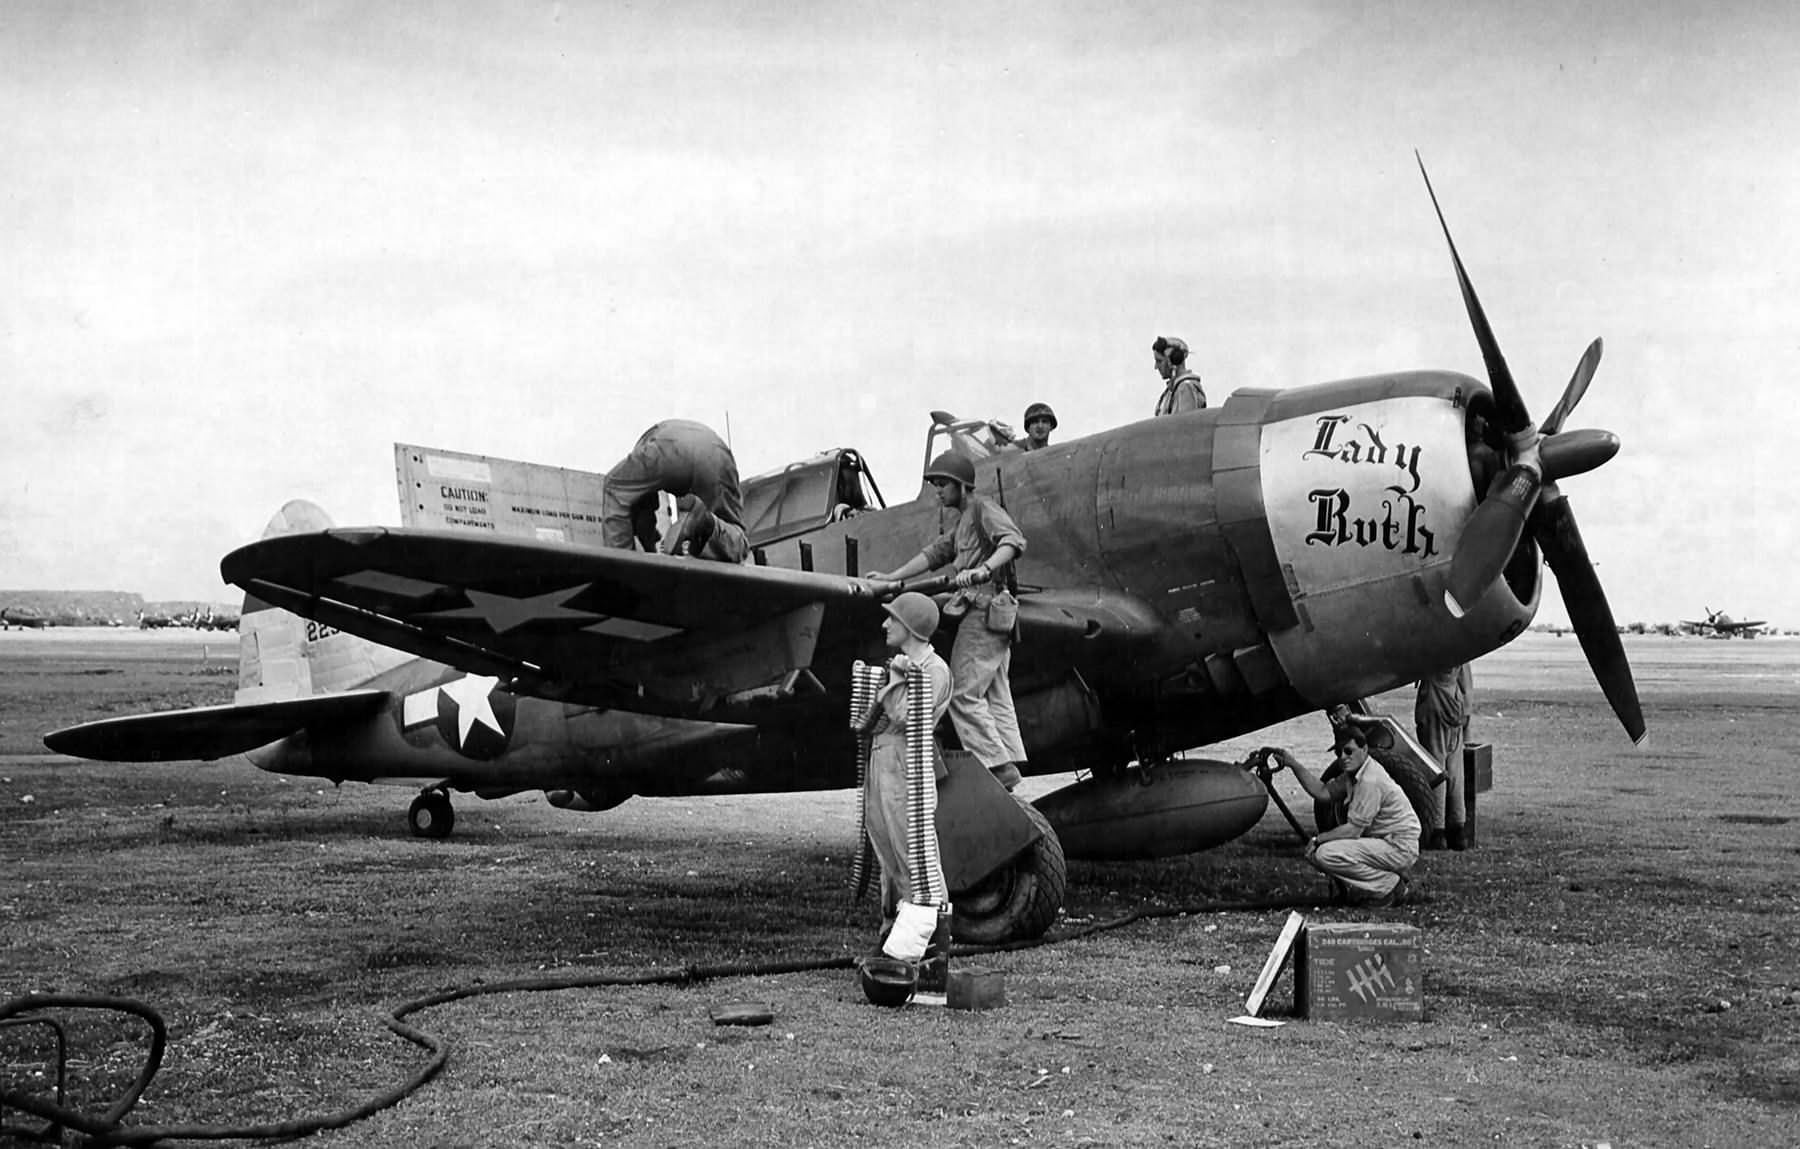 P-47D-15_42-23289_Lady_Ruth_19th_Fighter_Squadron_318th_Fighter_Group.jpg